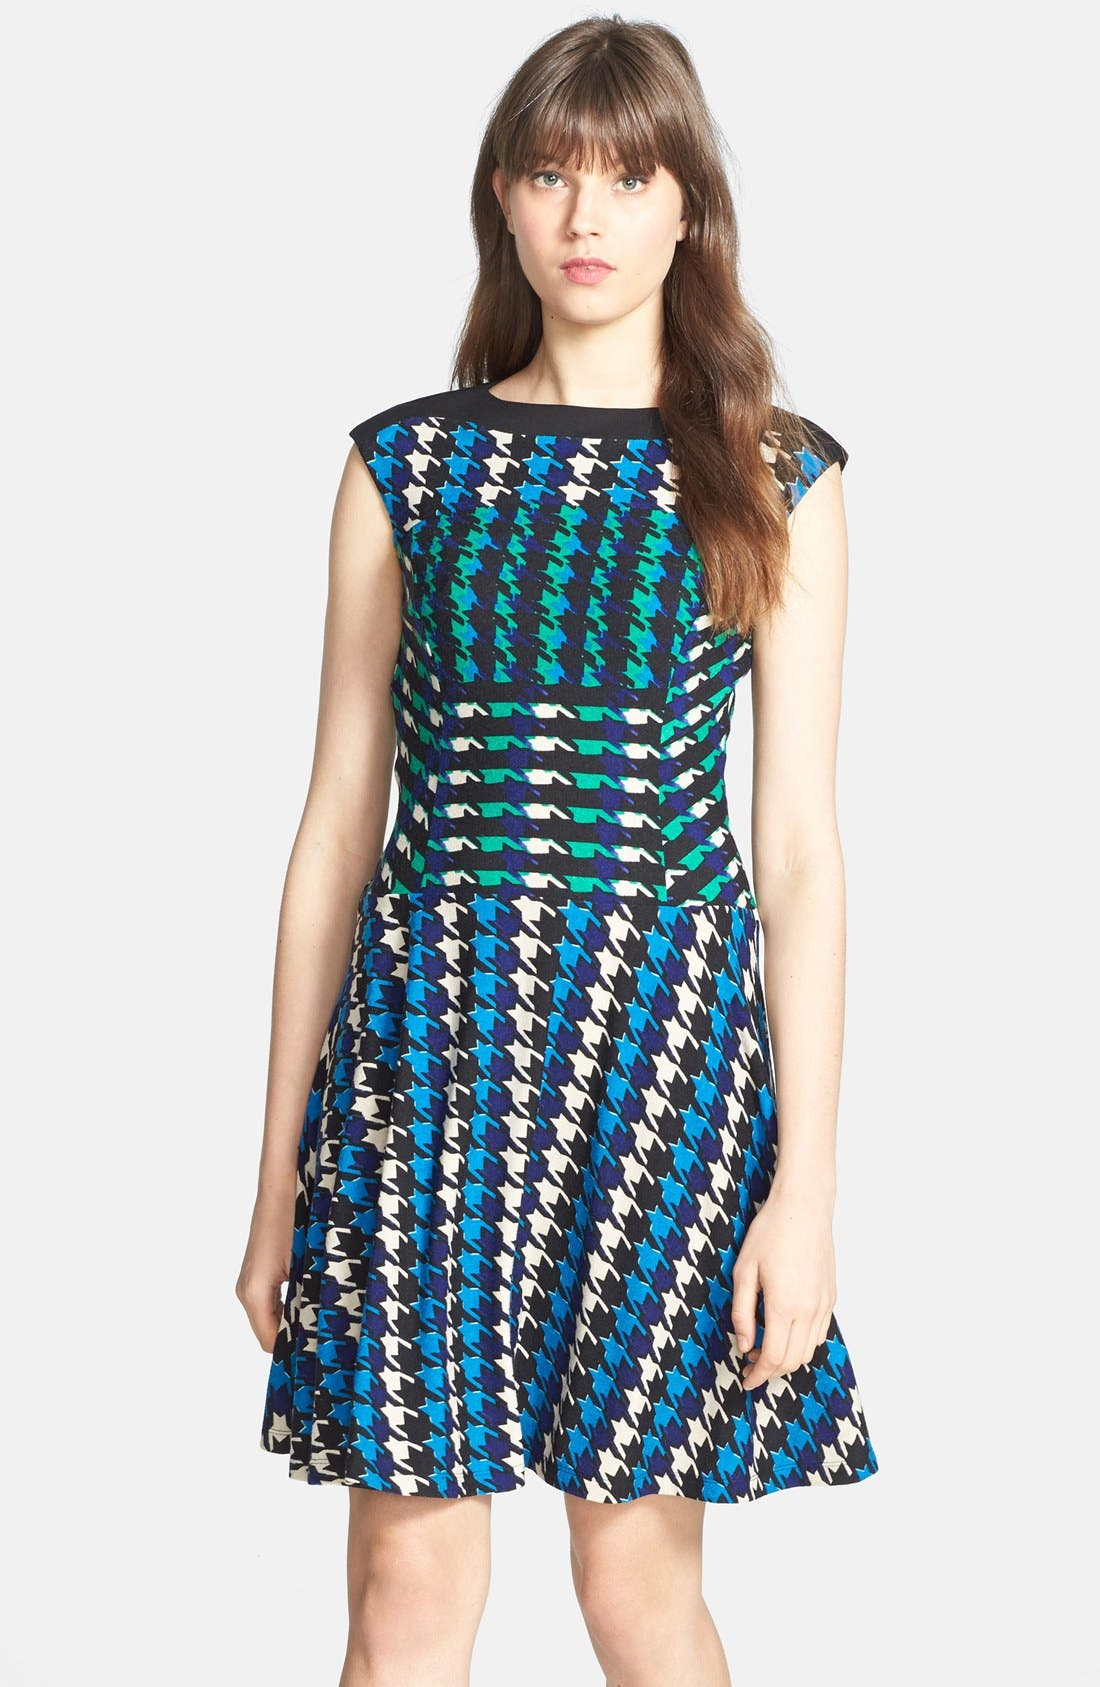 Main Image - Gabby Skye Houndstooth Print Ponte Knit Fit & Flare Dress